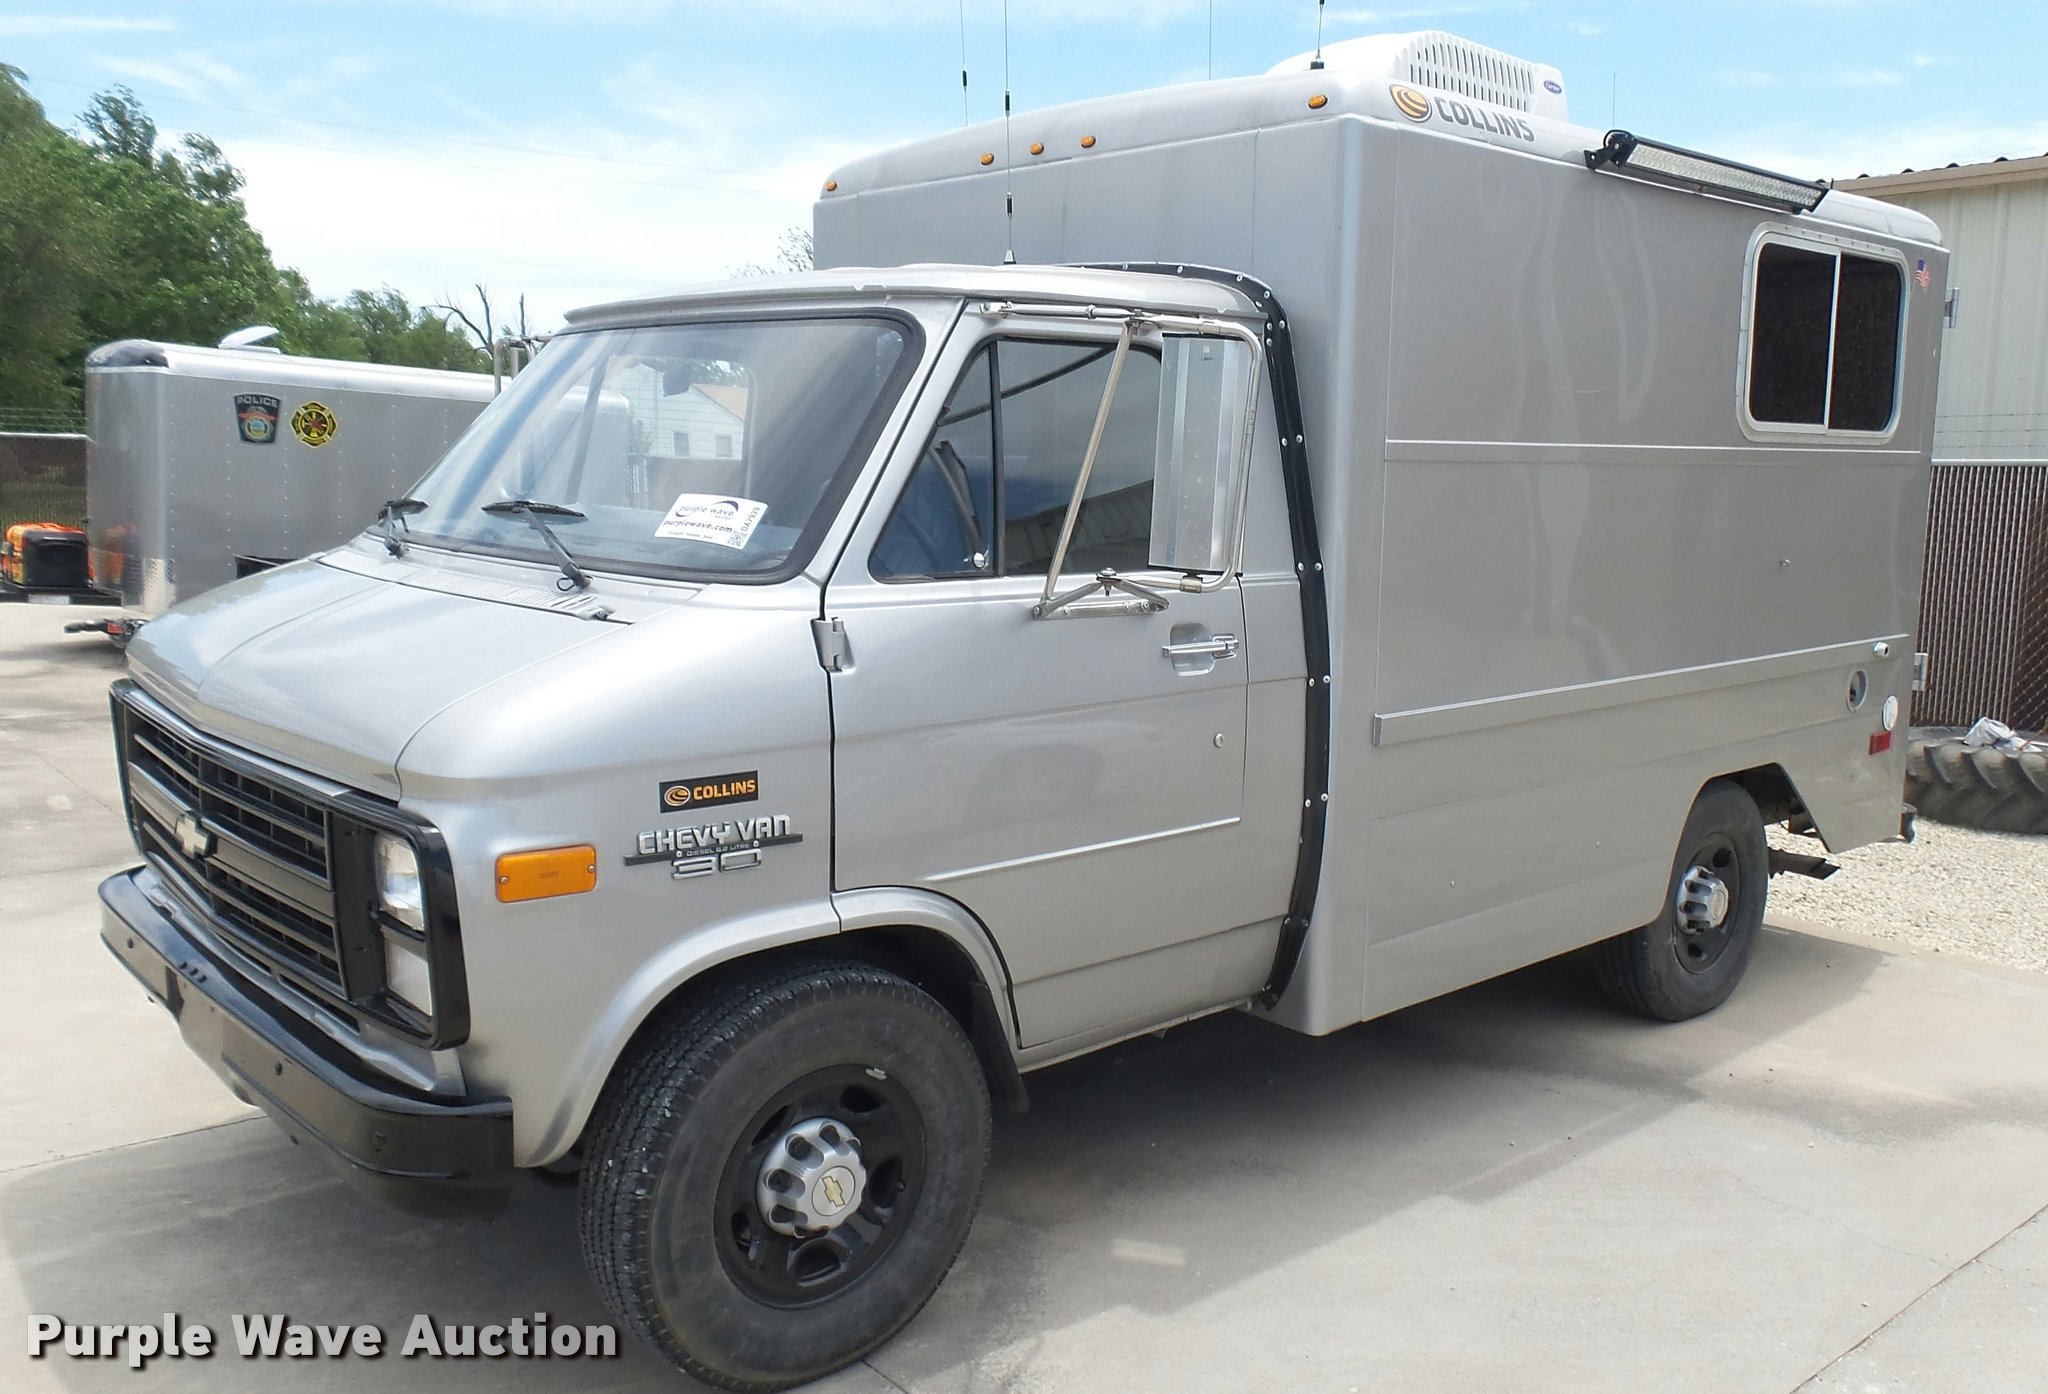 bf043b33cb ... 1986 Chevrolet G30 utility van Full size in new window ...